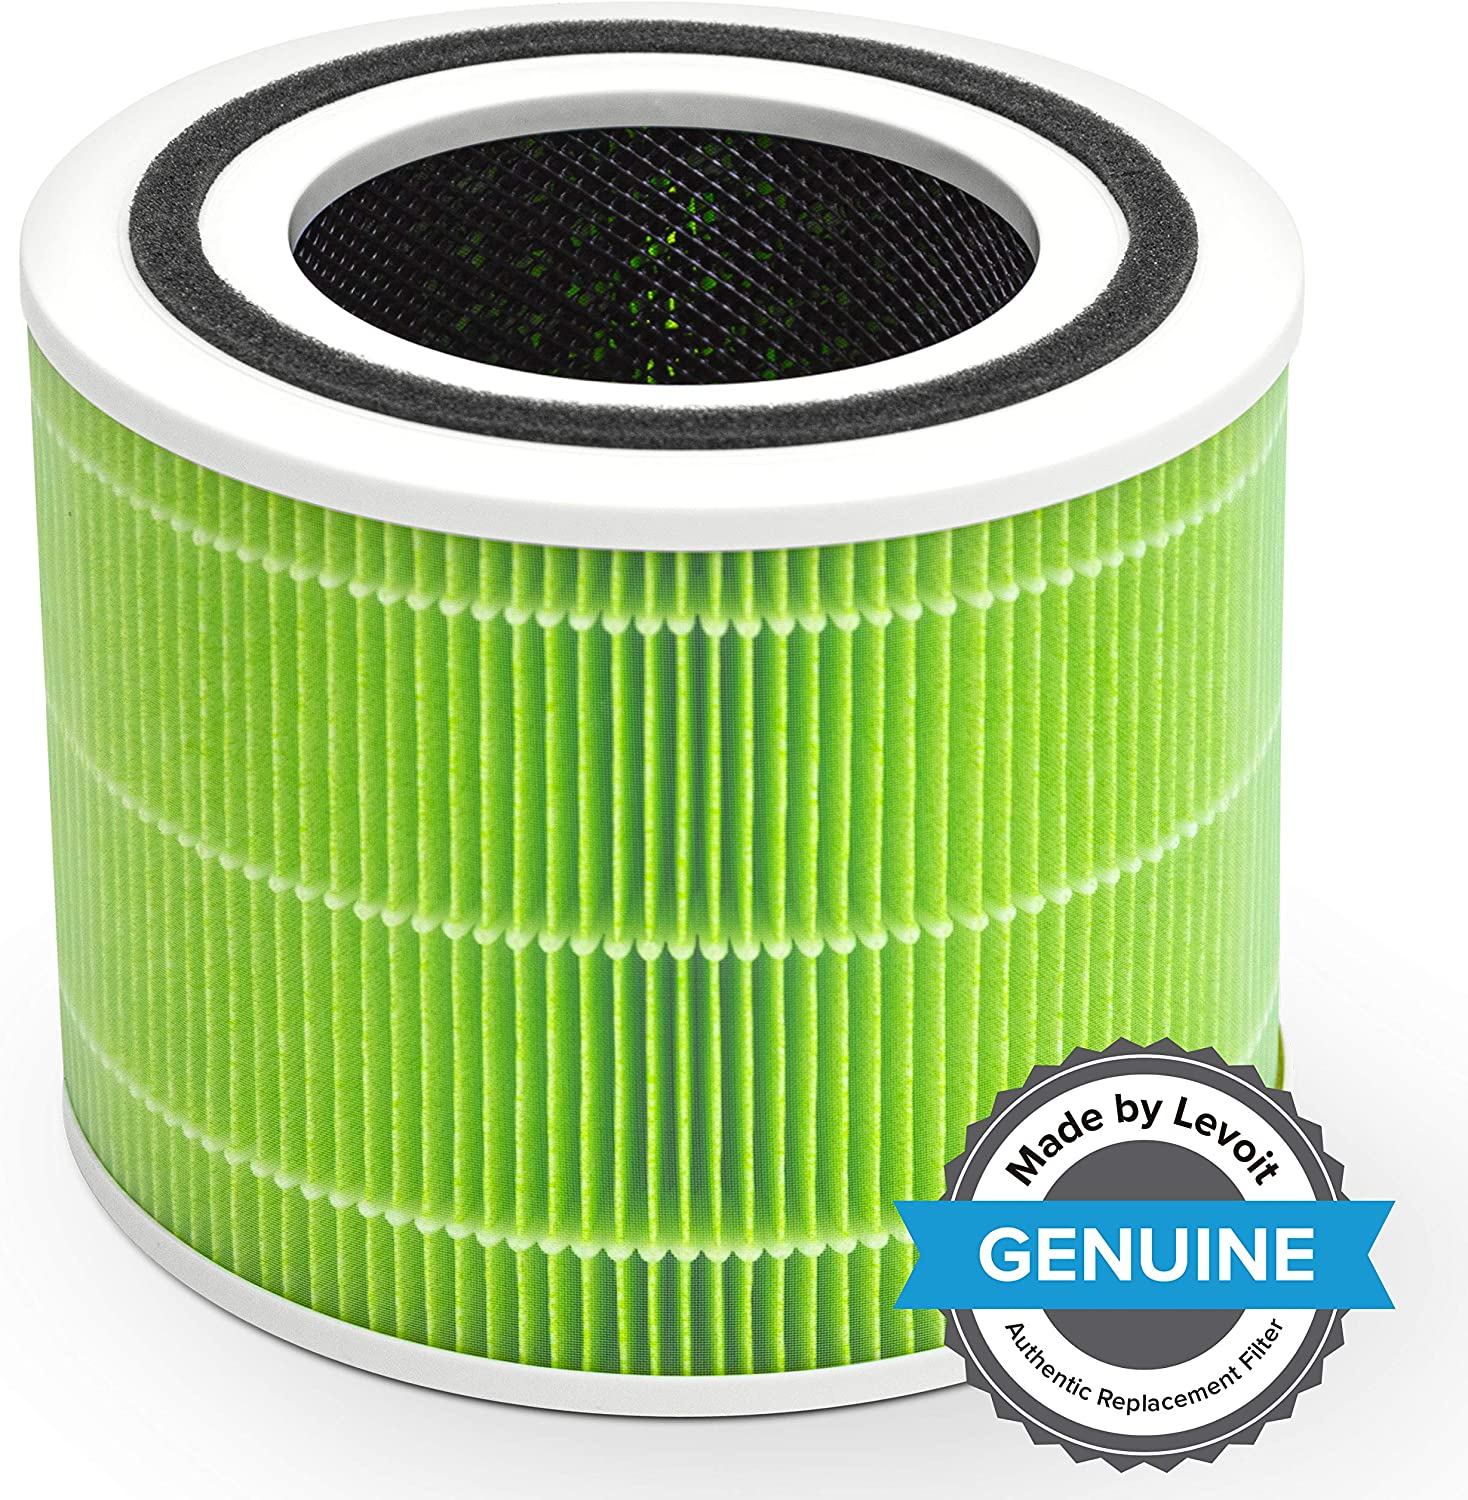 LEVOIT Core 300 Filtro de Repuesto para Purificador de Aire H13, Filtro HEPA 3 en 1, Filtro y Prefiltro de Carbón Activado Altamente Eficiente, Core 300-RF(Bacterias y Moho): Amazon.es: Hogar